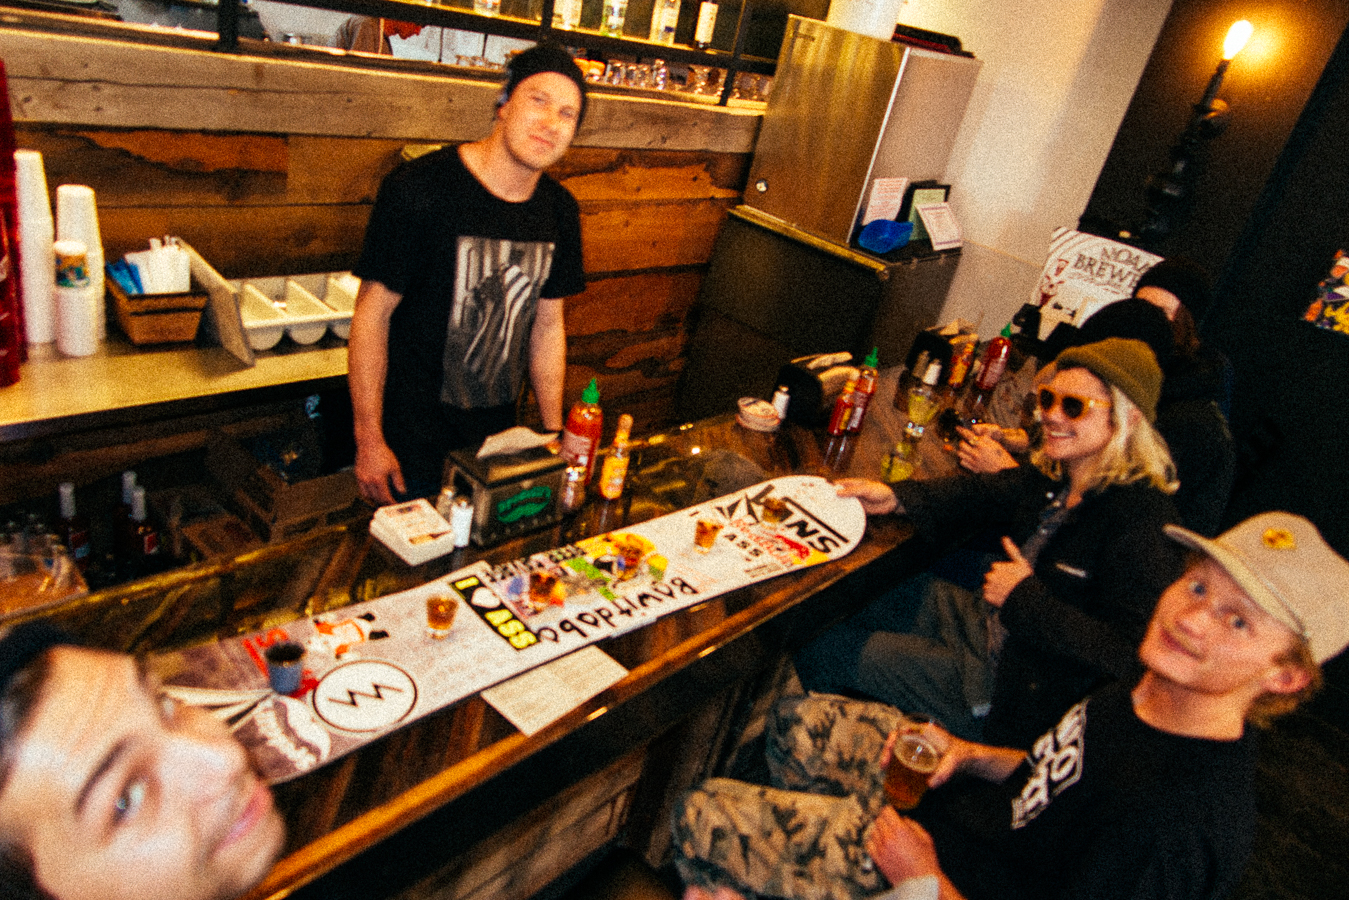 I finally got to check out the  Spedellis restaurant , and partied with my former Arnette riders Ben Bogart and Ben Bilodeau. Aaron Biittner poured up some drinks on Pat Moore's 'shot-board' to start up the good times.